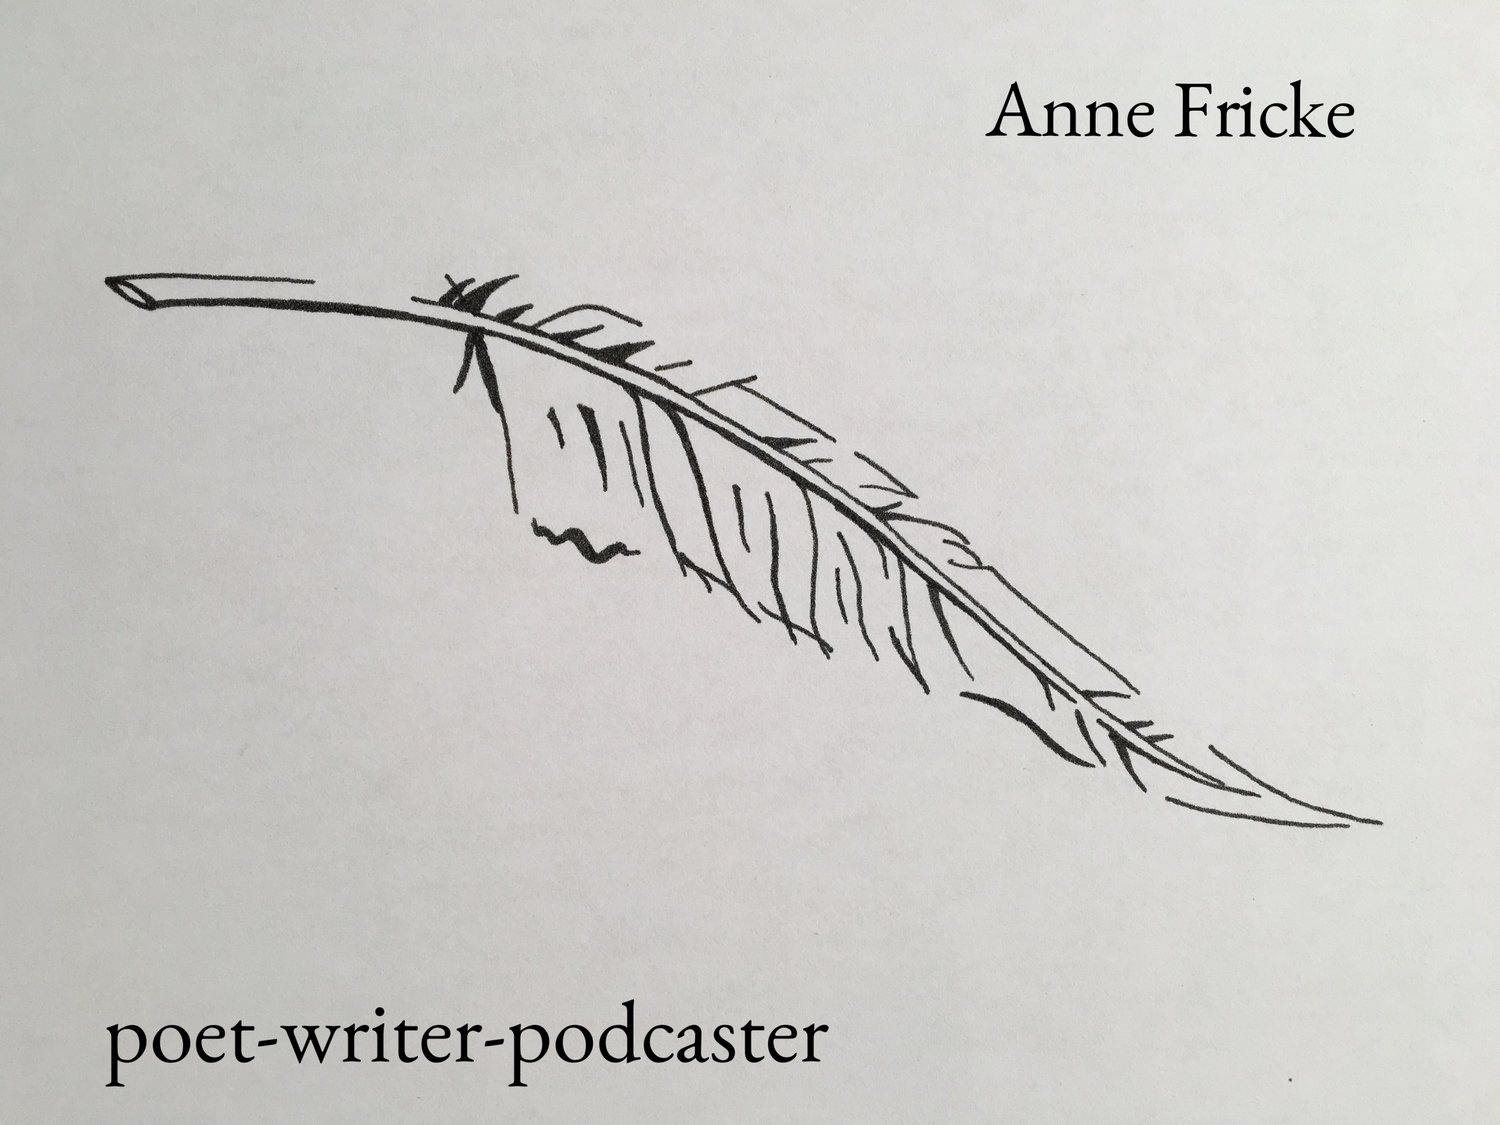 Anne Fricke                   poet-writer-podcaster